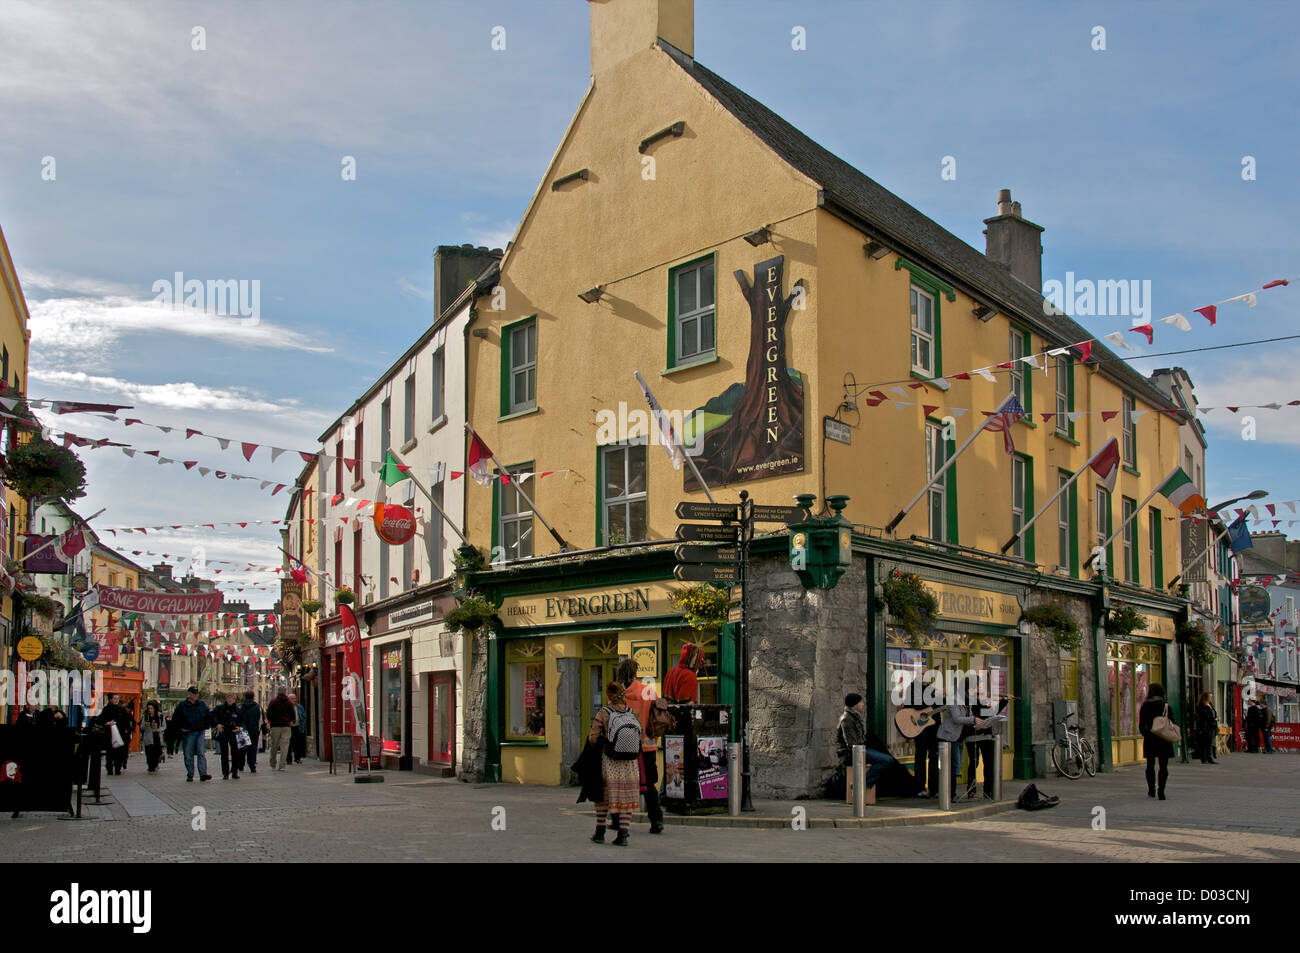 Evergreen Pub Galway County Galway Ireland - Stock Image